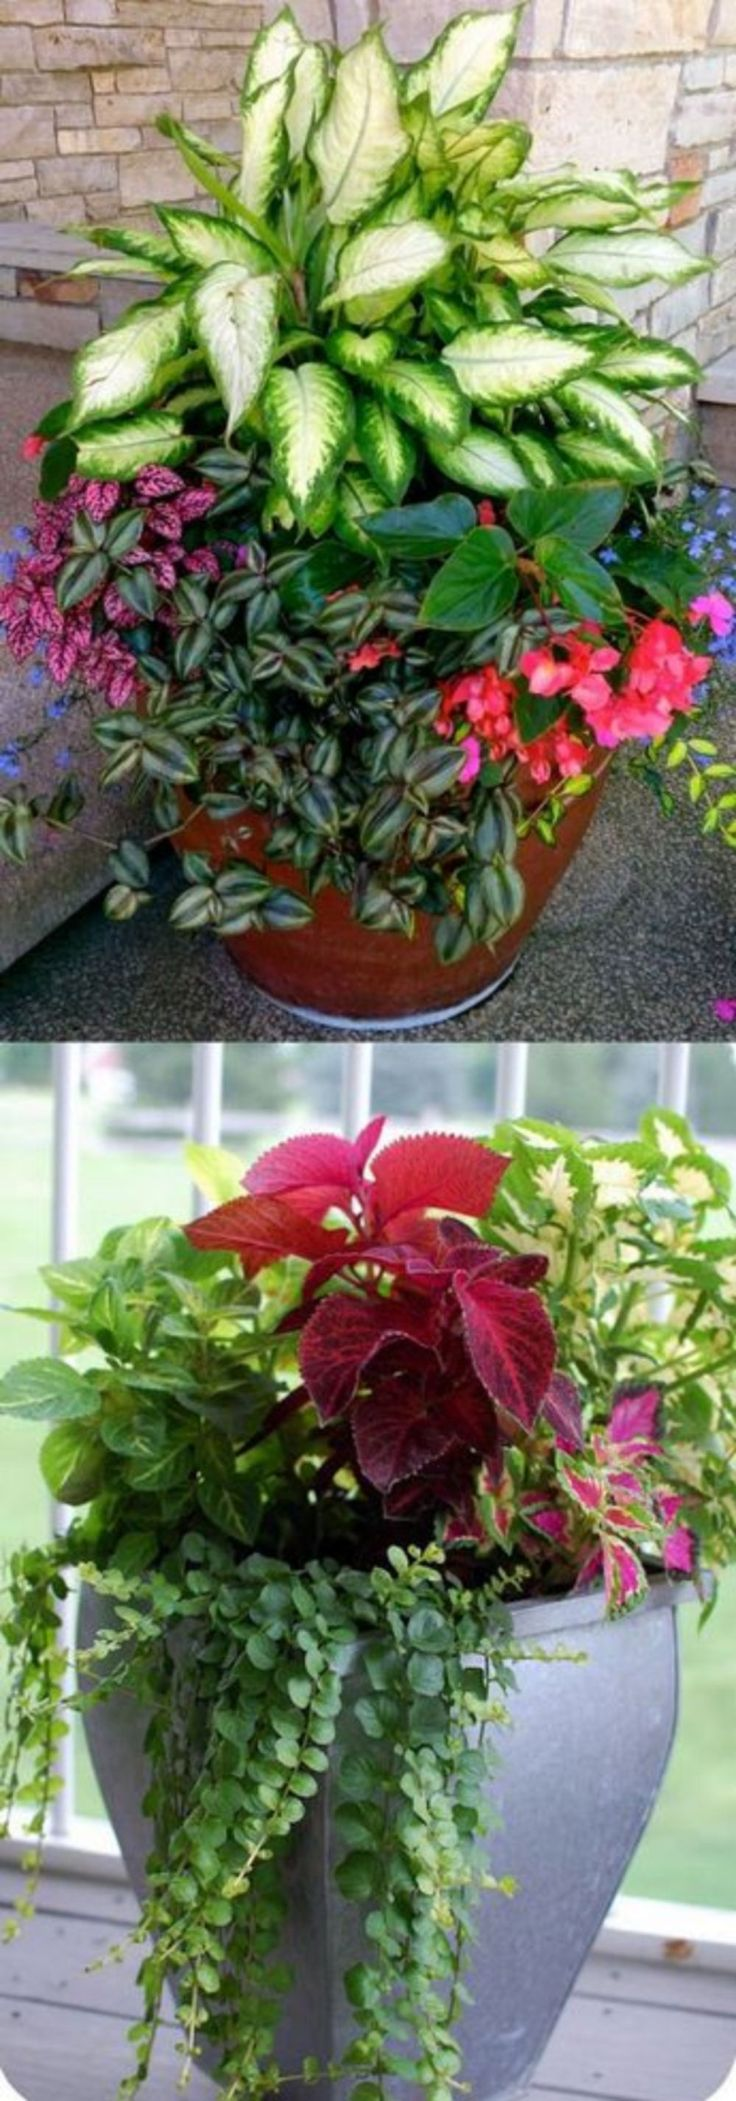 Nice 33 Beautiful Flowers in Containers Gardening Ideas https://cooarchitecture.com/2017/05/25/33-beautiful-flowers-containers-gardening-ideas/